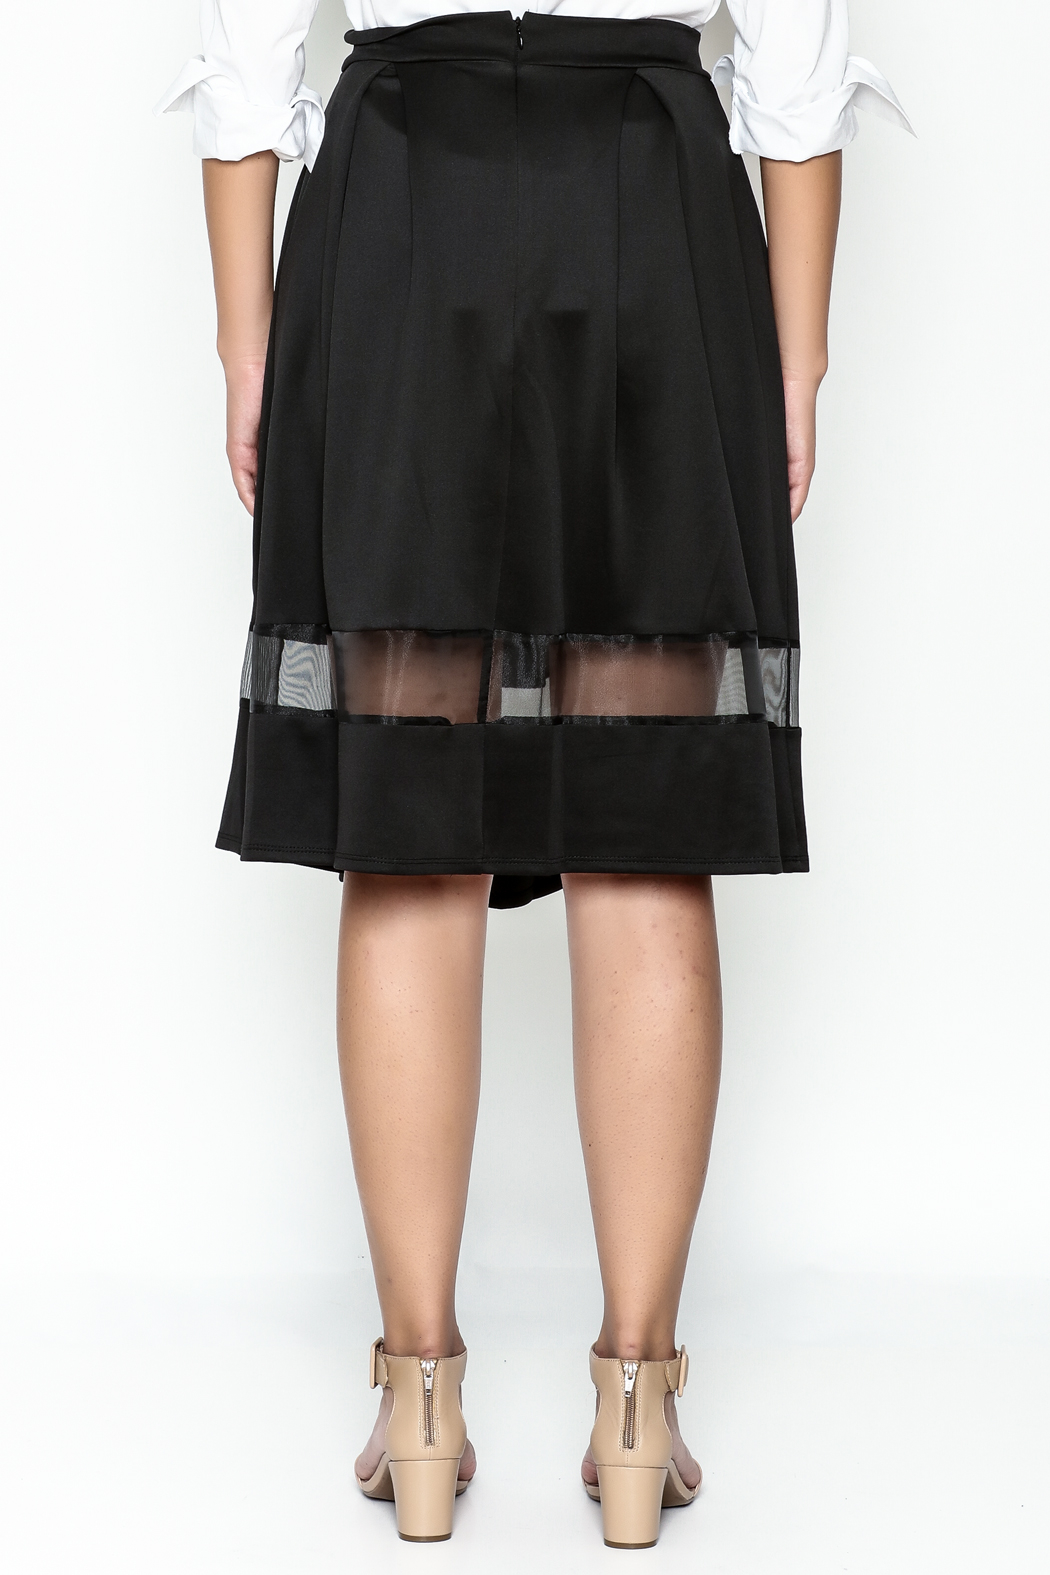 Honey Punch Lucy Skirt - Back Cropped Image